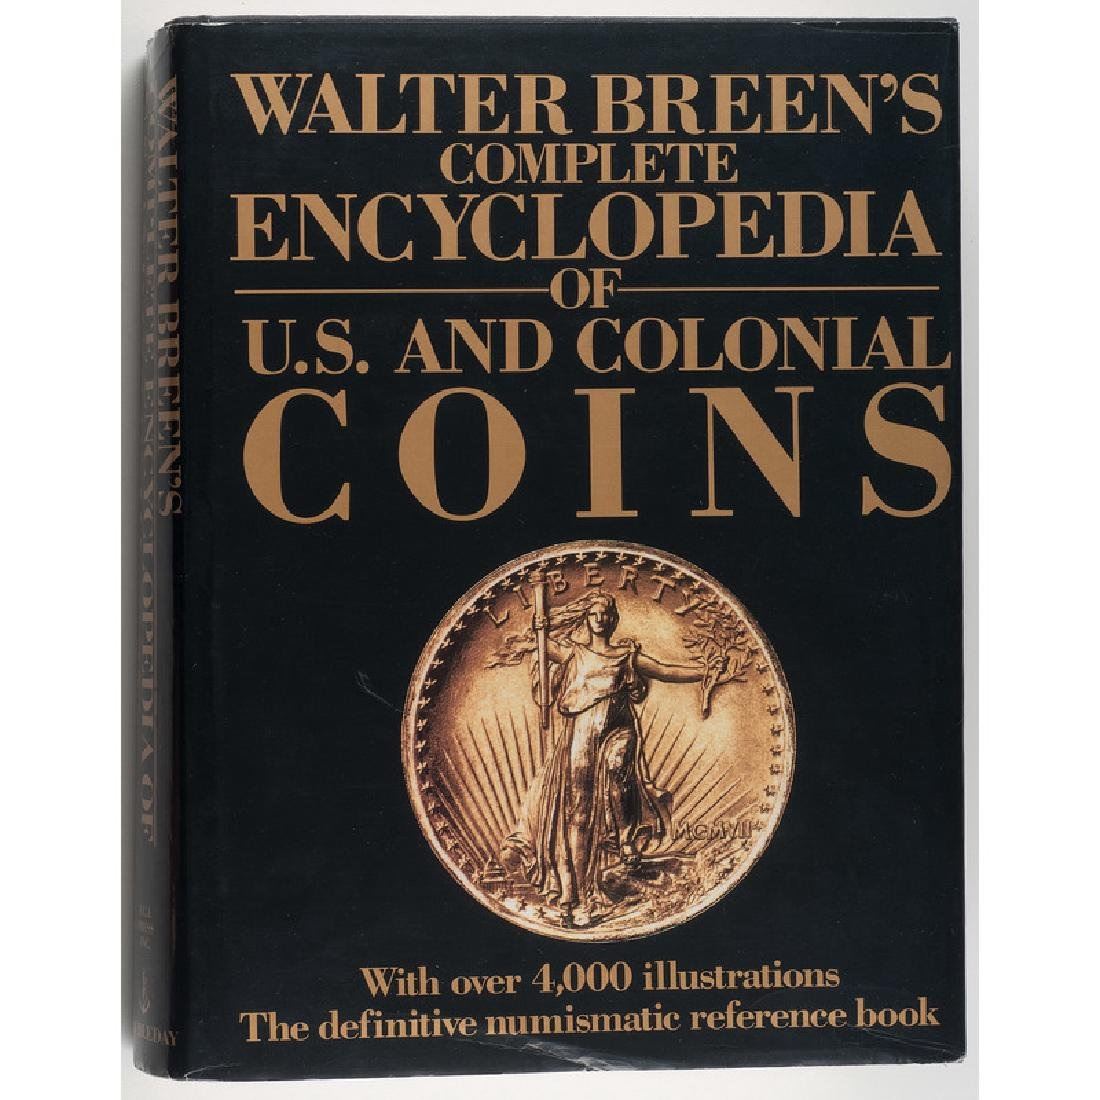 Two Books by Walter Breen